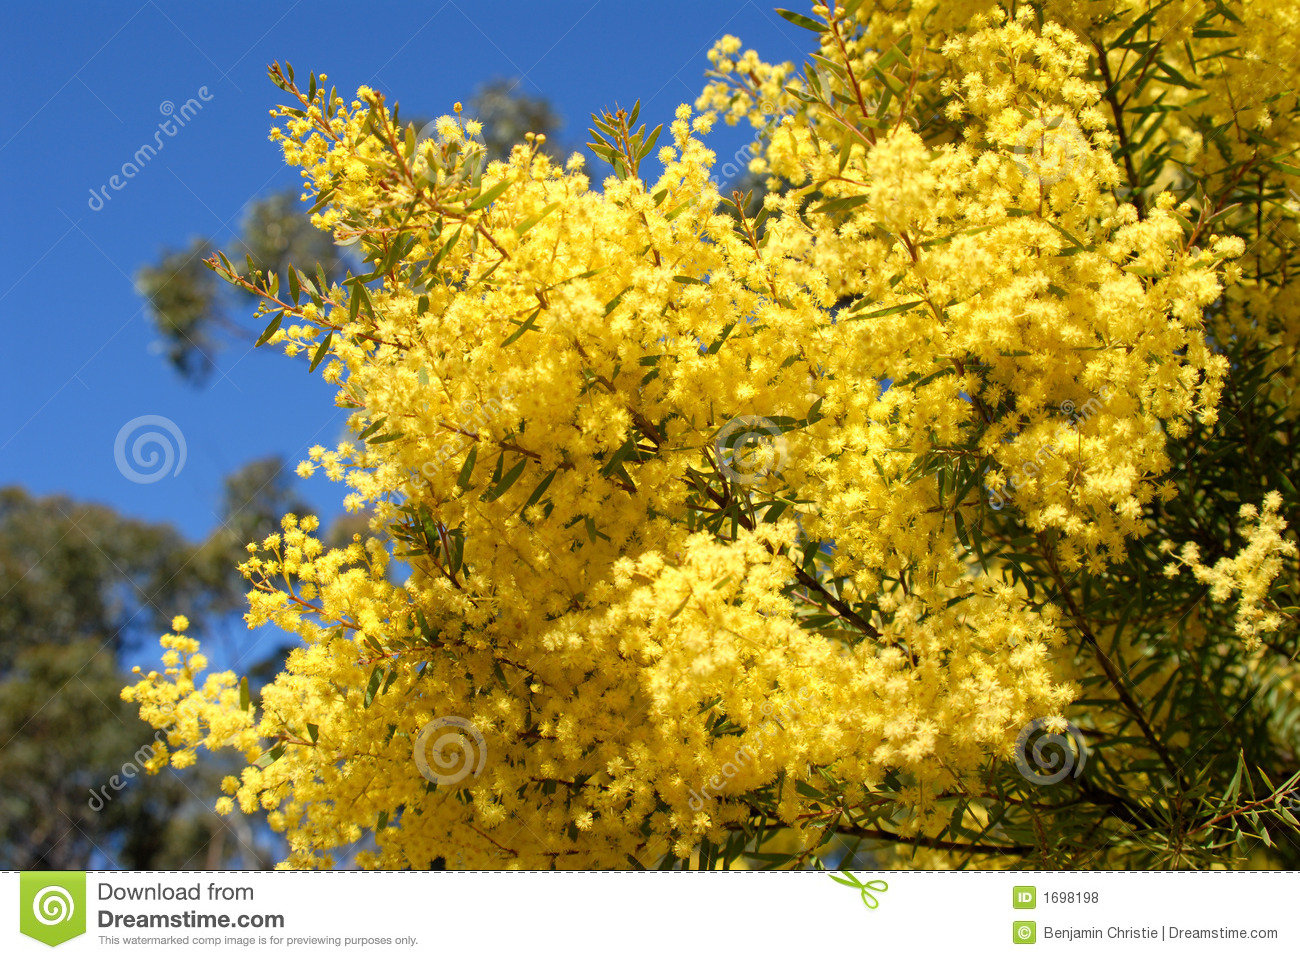 Mimosa Plant Kopen Australian Wattle In Spring With Yellow Flowering Bloom